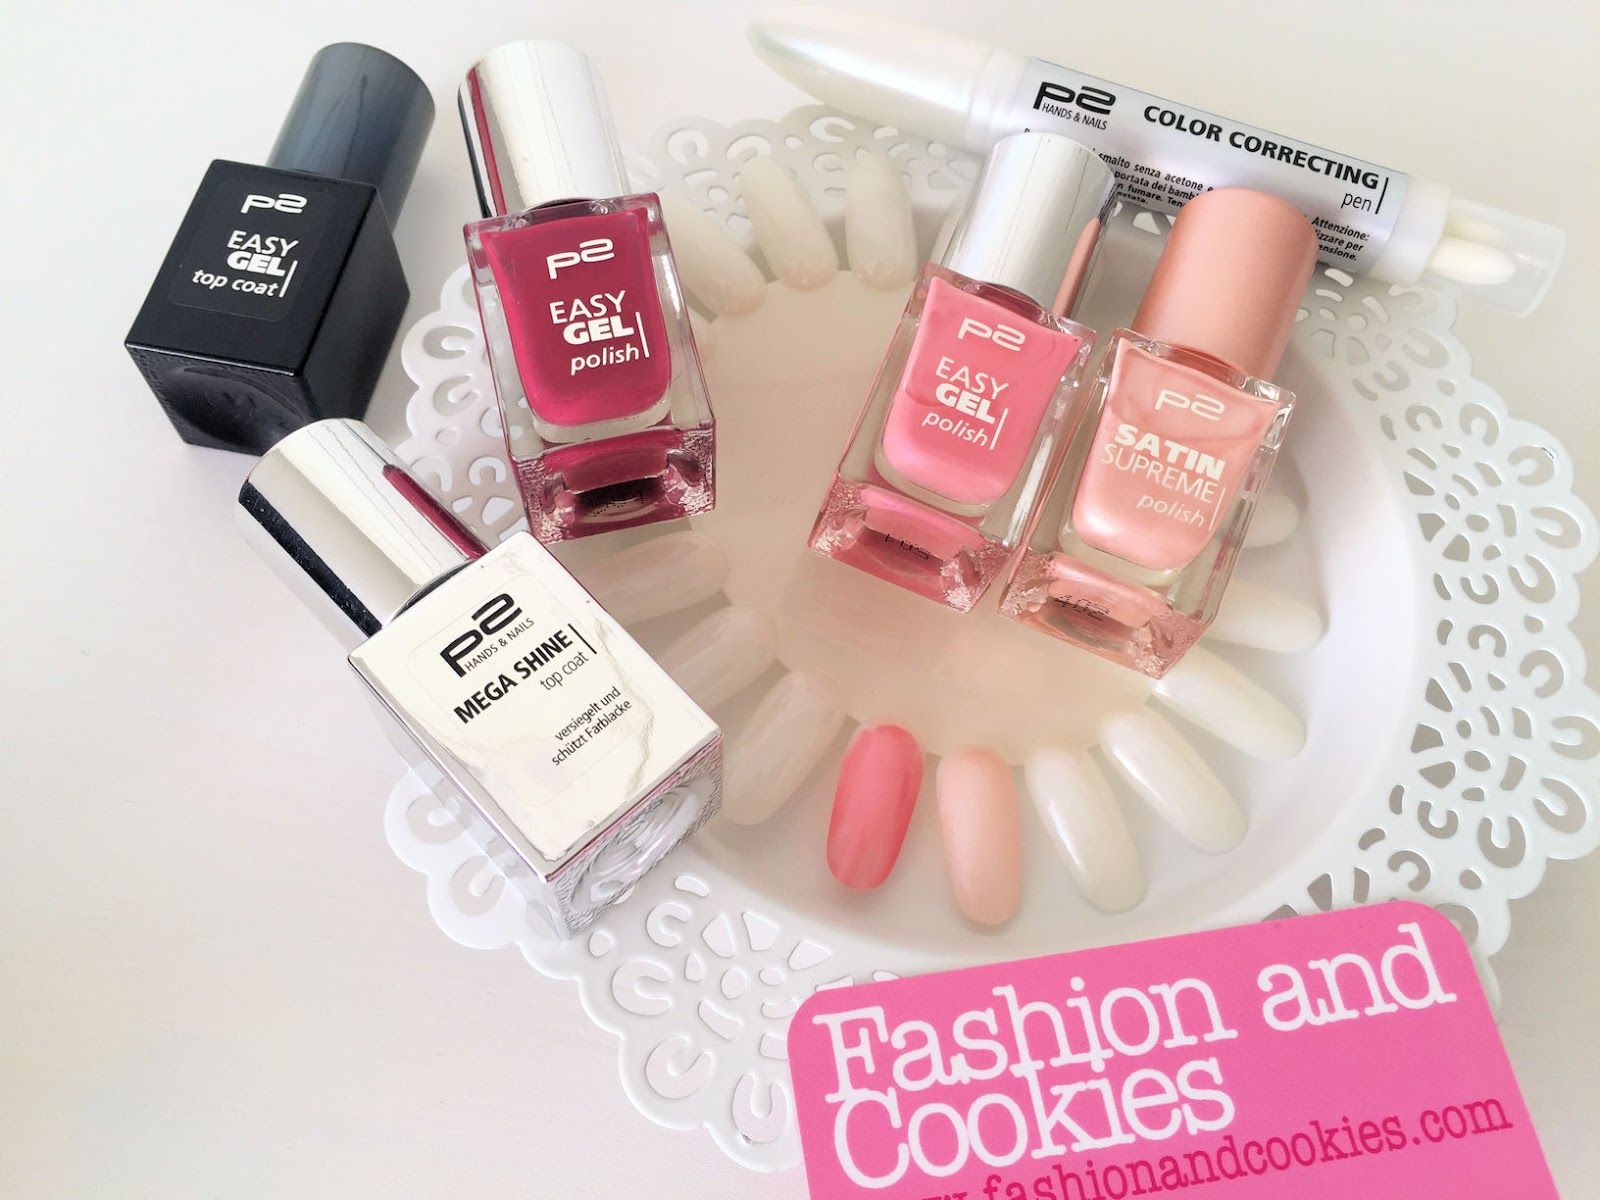 p2 Cosmetics makeup low cost review easy gel nail polish su Fashion and Cookies beauty blog, beauty blogger